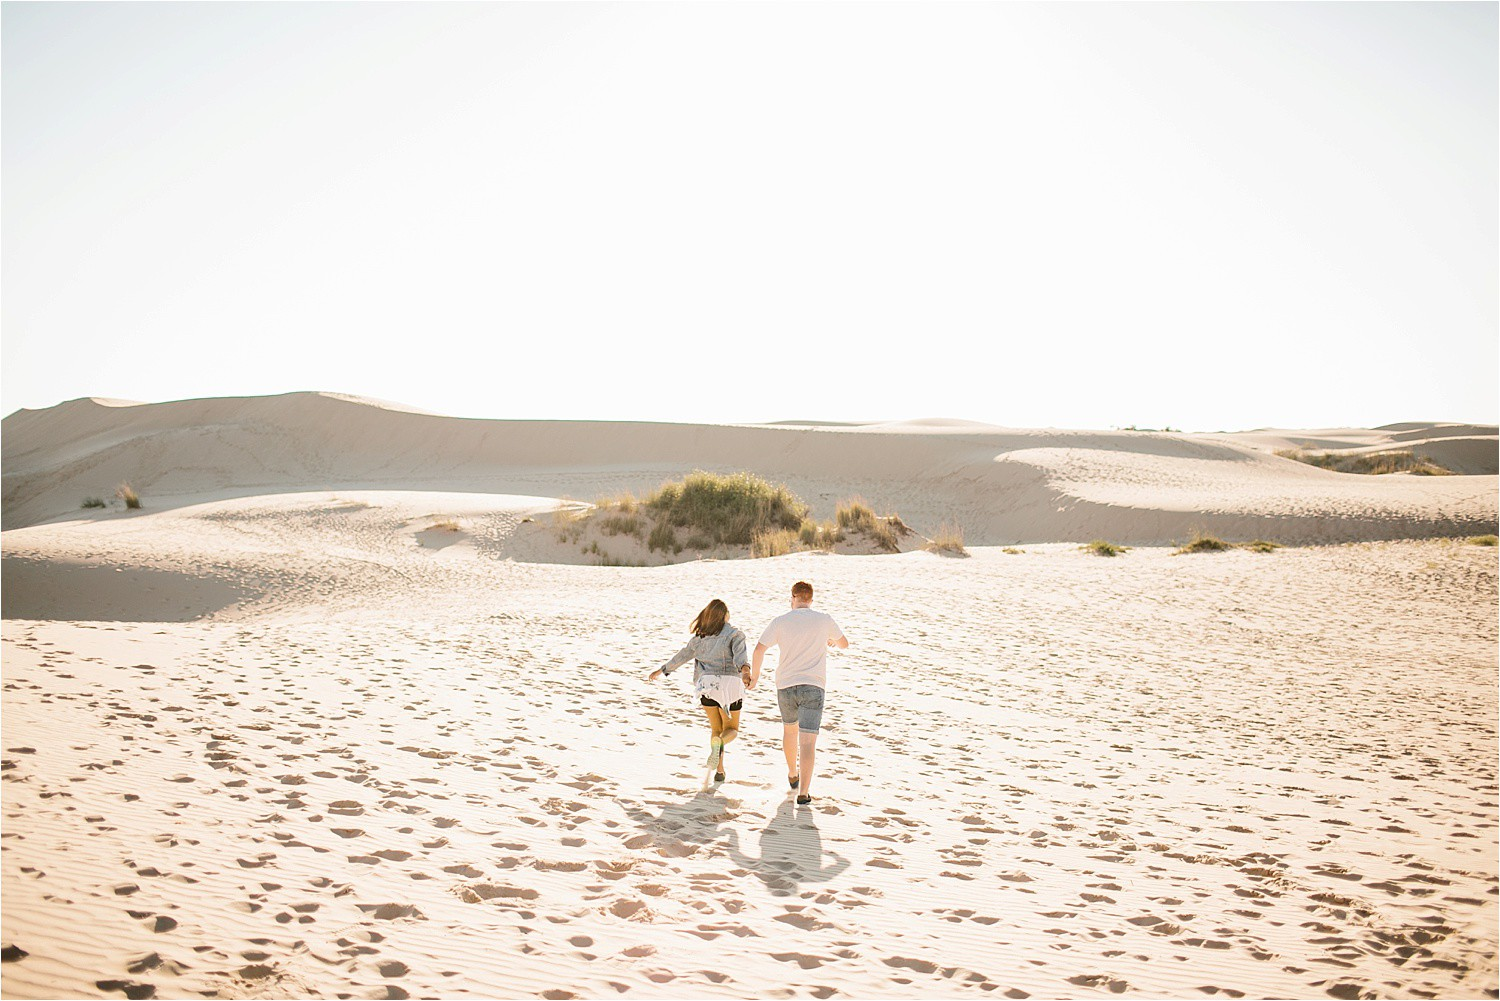 Lauren + Jacob __ a monahans sand dunes engagement session at sunrise by North Texas Wedding Photographer, Rachel Meagan Photography __ 37